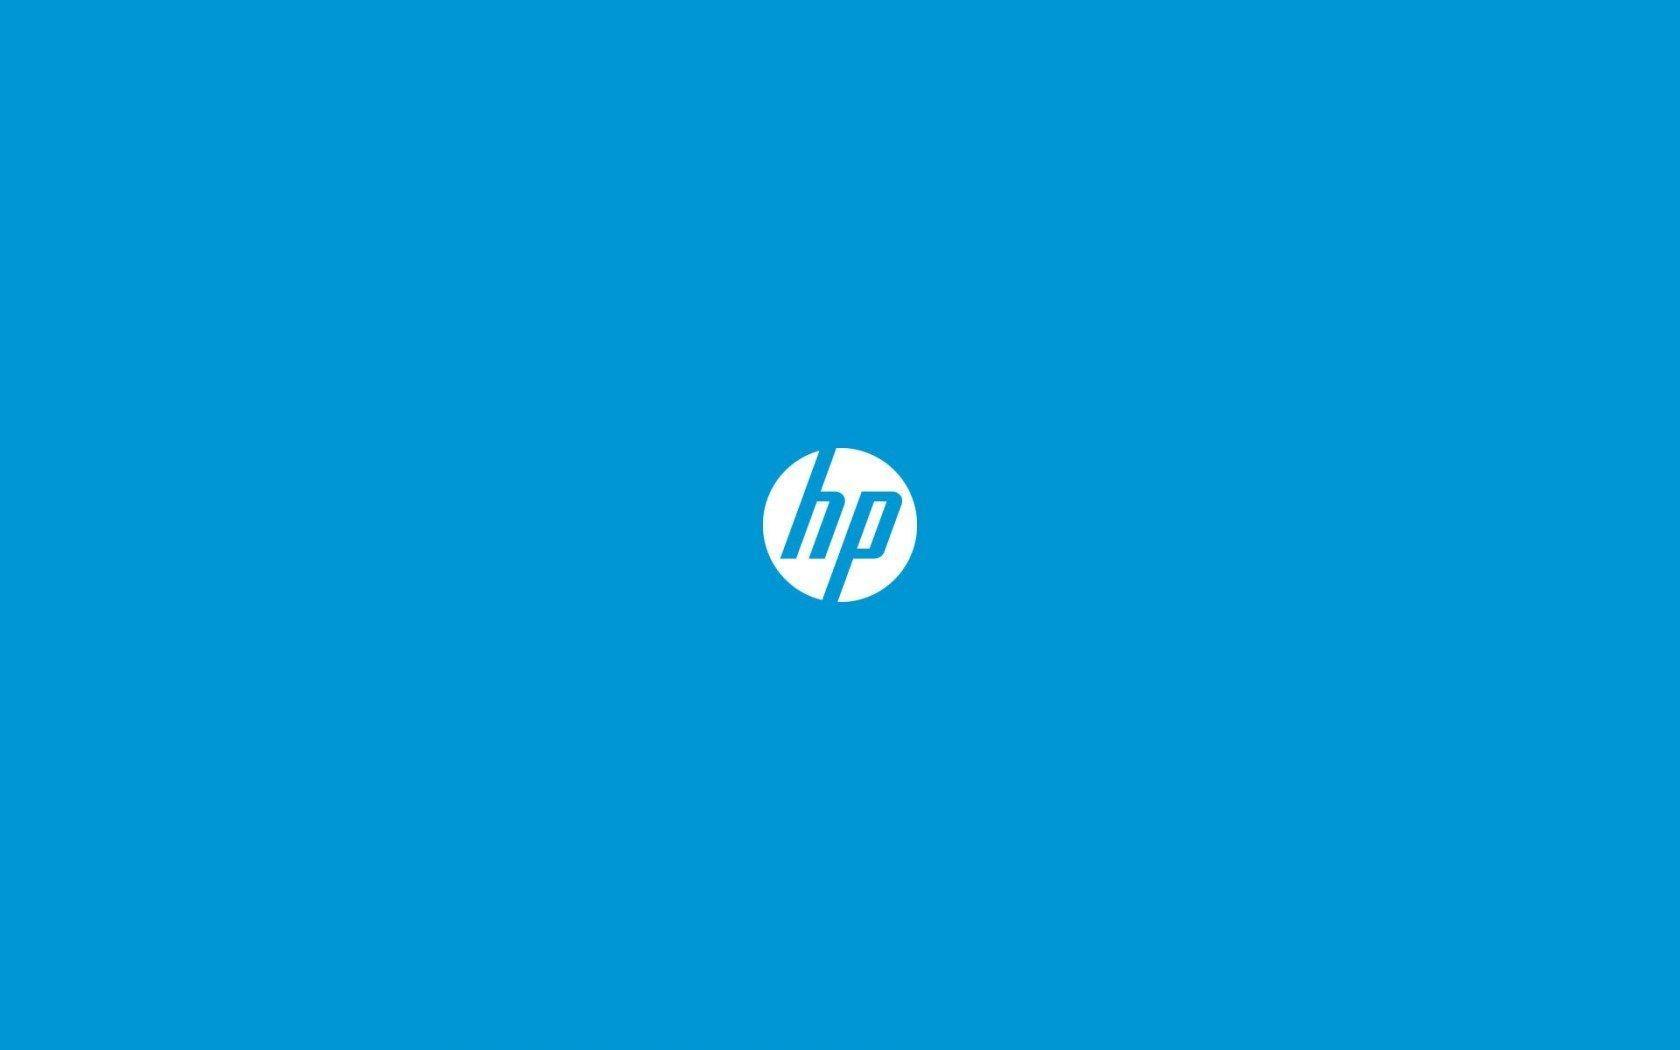 Hp Logo Wallpapers Wallpaper Cave HD Wallpapers Download Free Images Wallpaper [1000image.com]